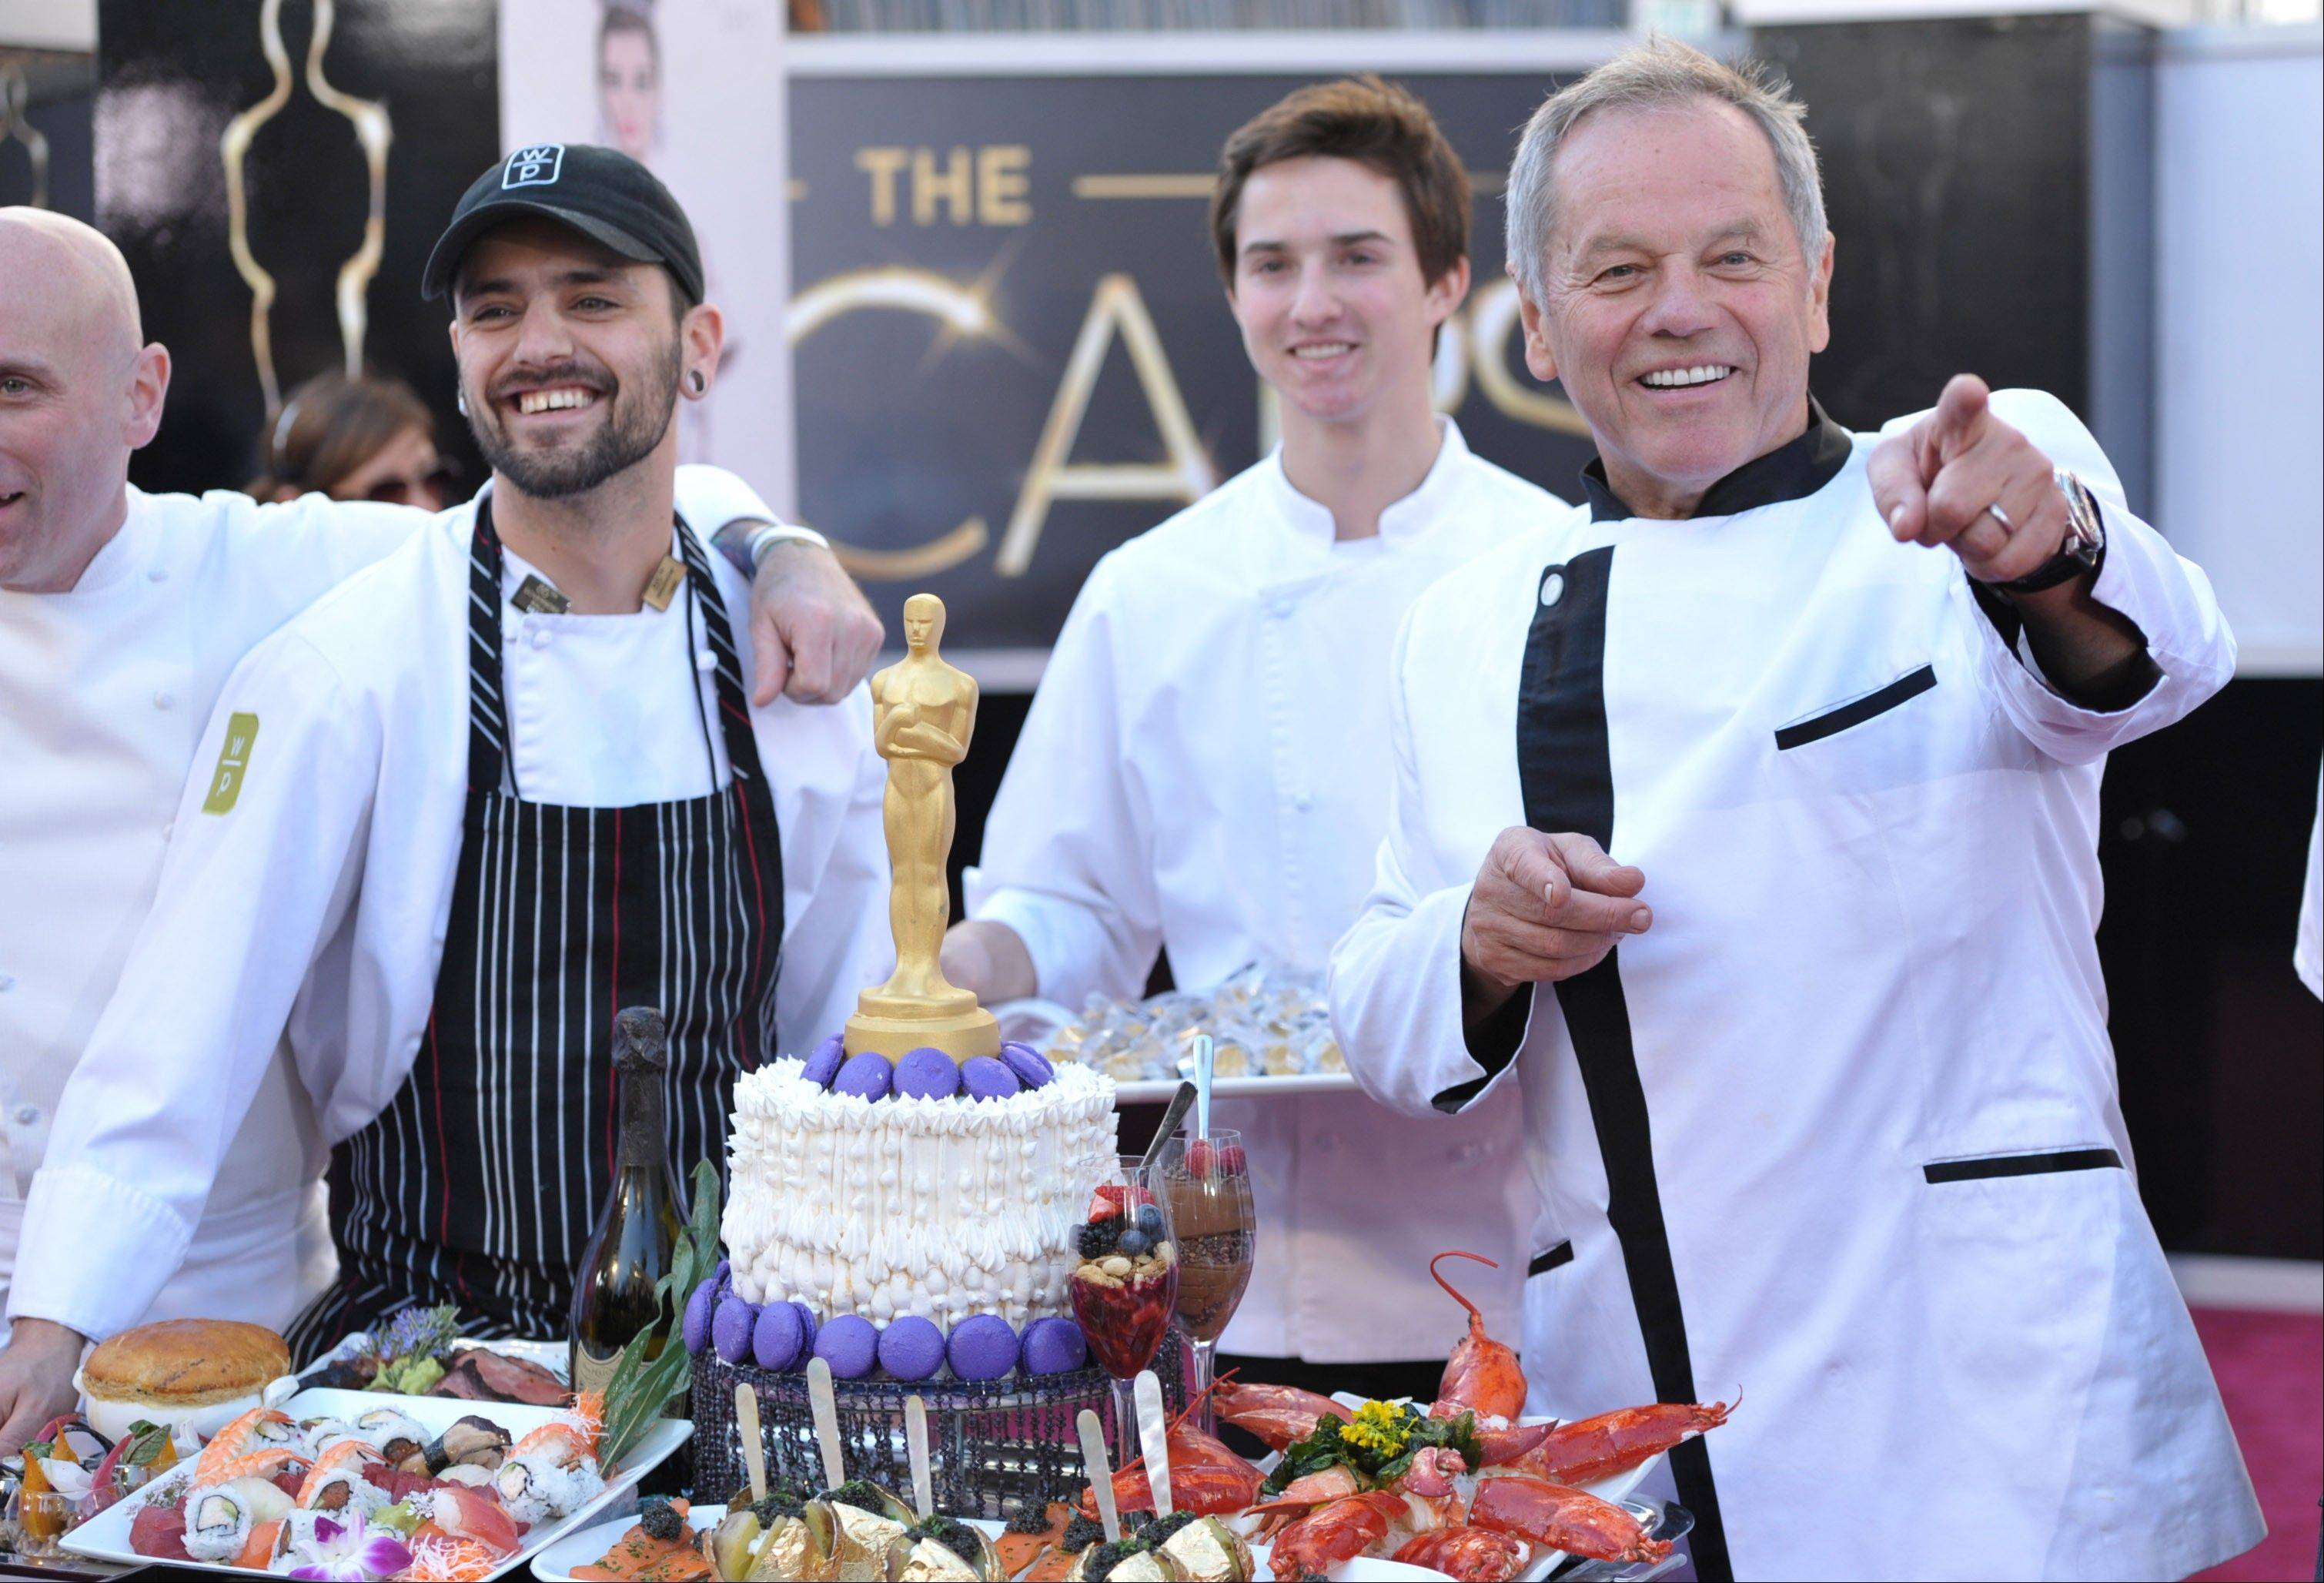 Celebrity chef Wolfgang Puck displays a platter of food the 85th Academy Awards at the Dolby Theatre on Sunday in Los Angeles.